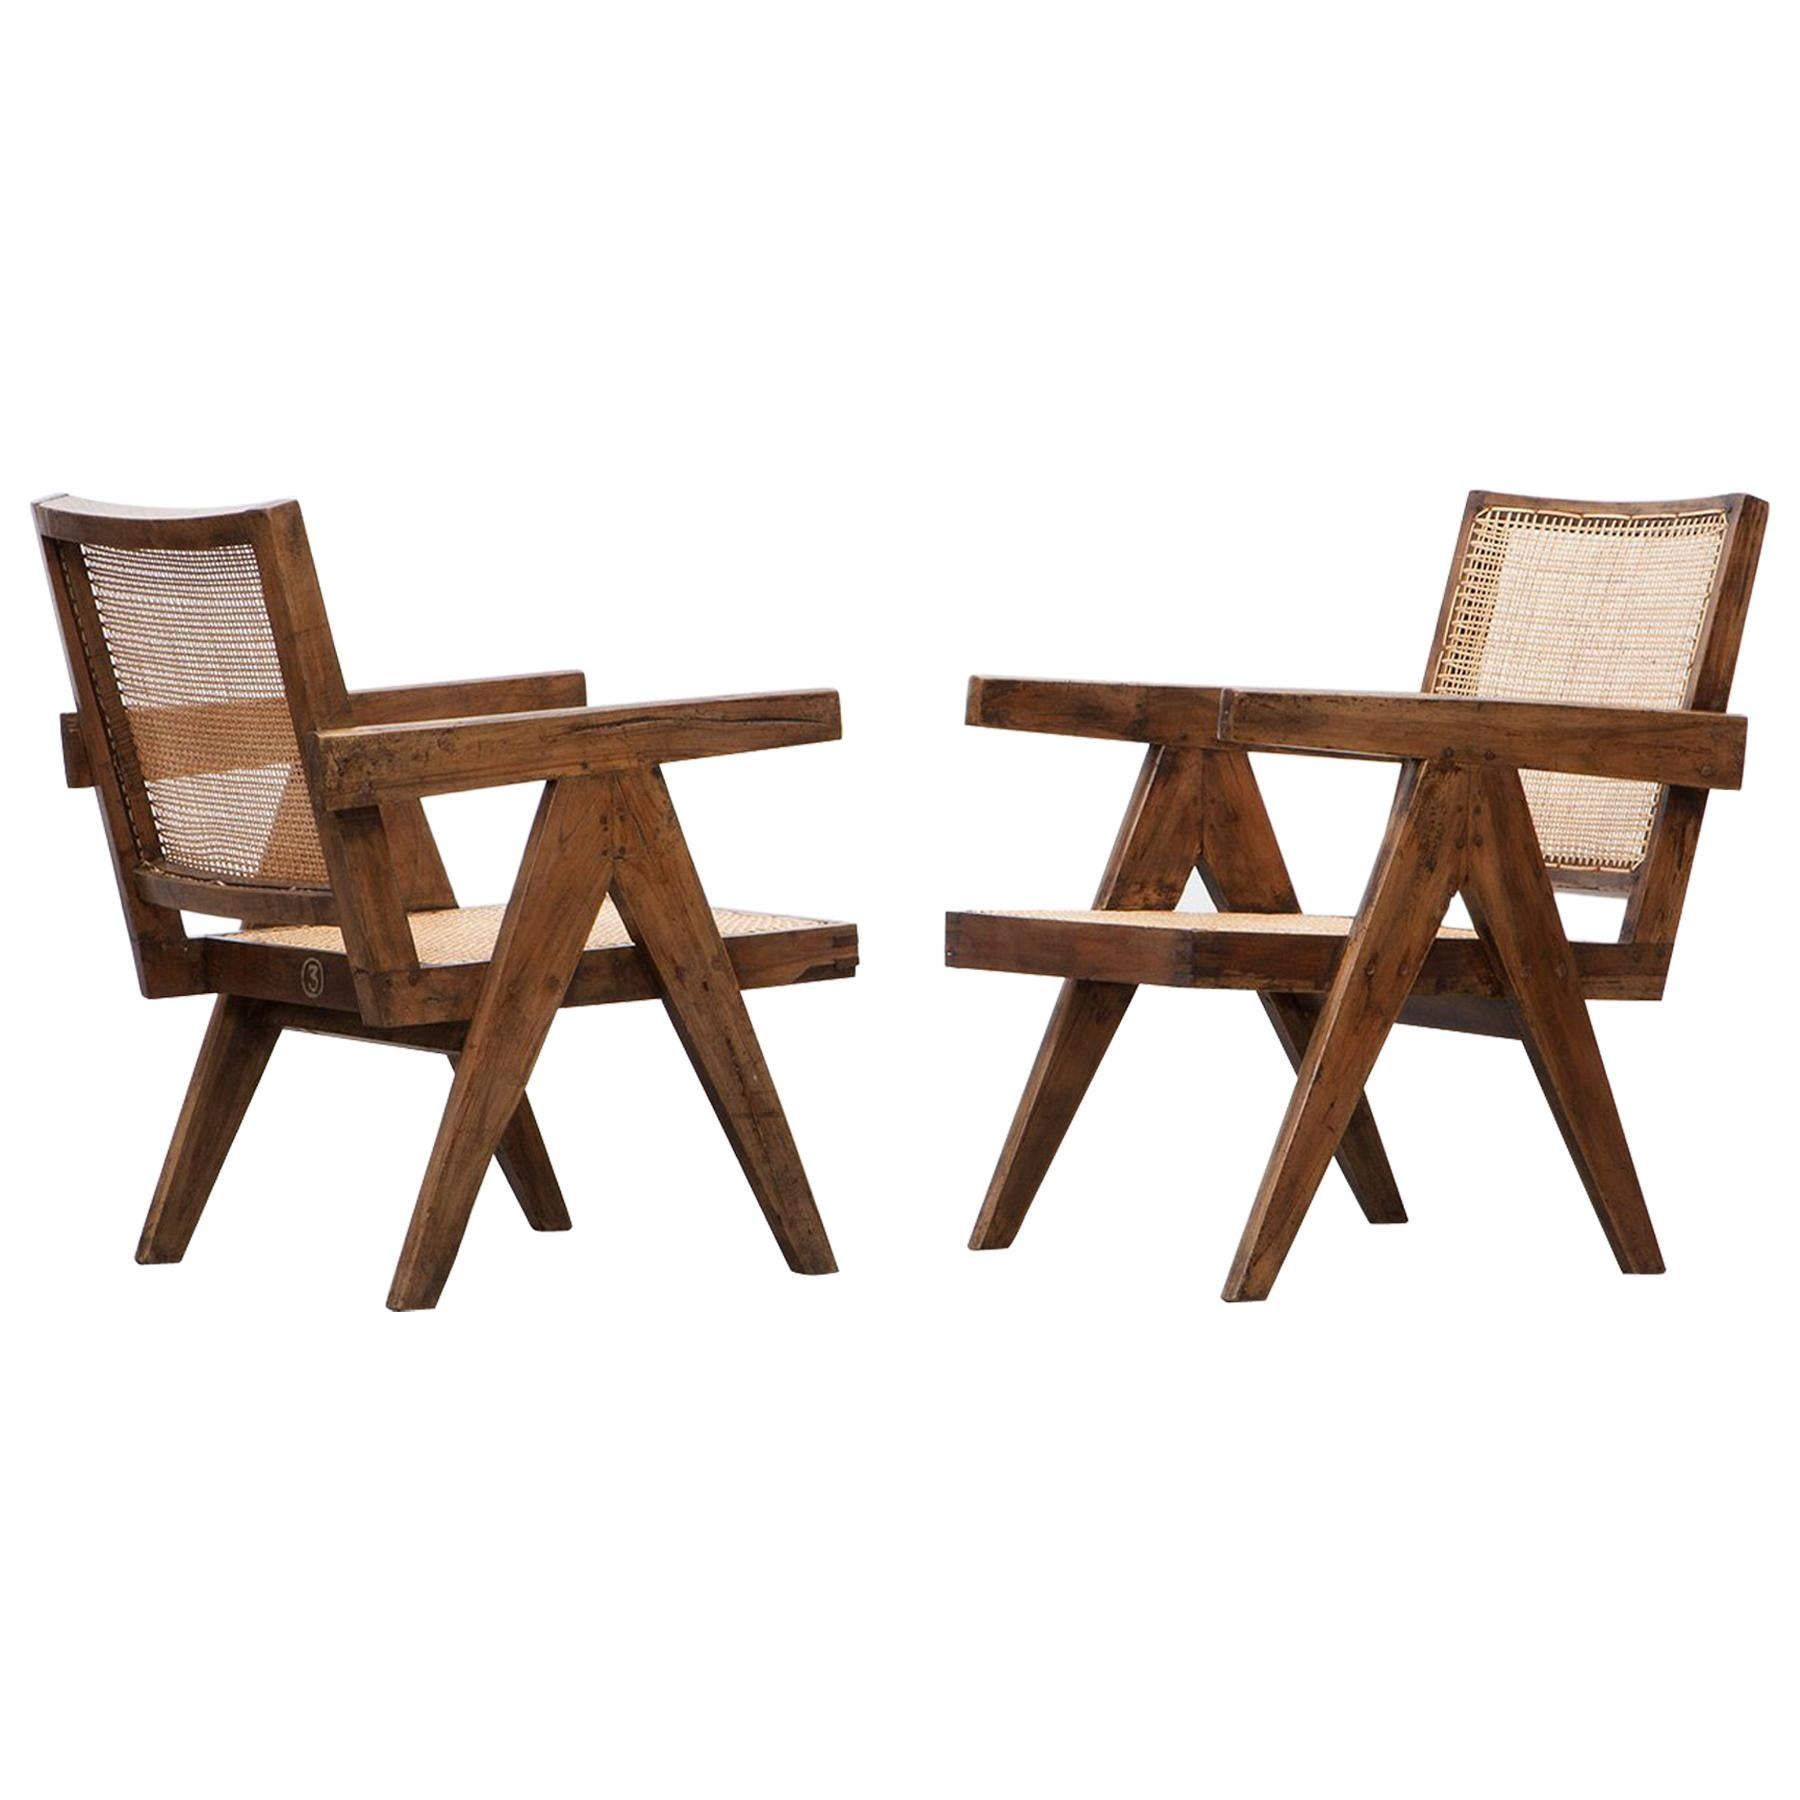 And By 1950s Jeanneret Wooden Cane Chairs Pierre Lounge Teak Brown qSpGLVMUz